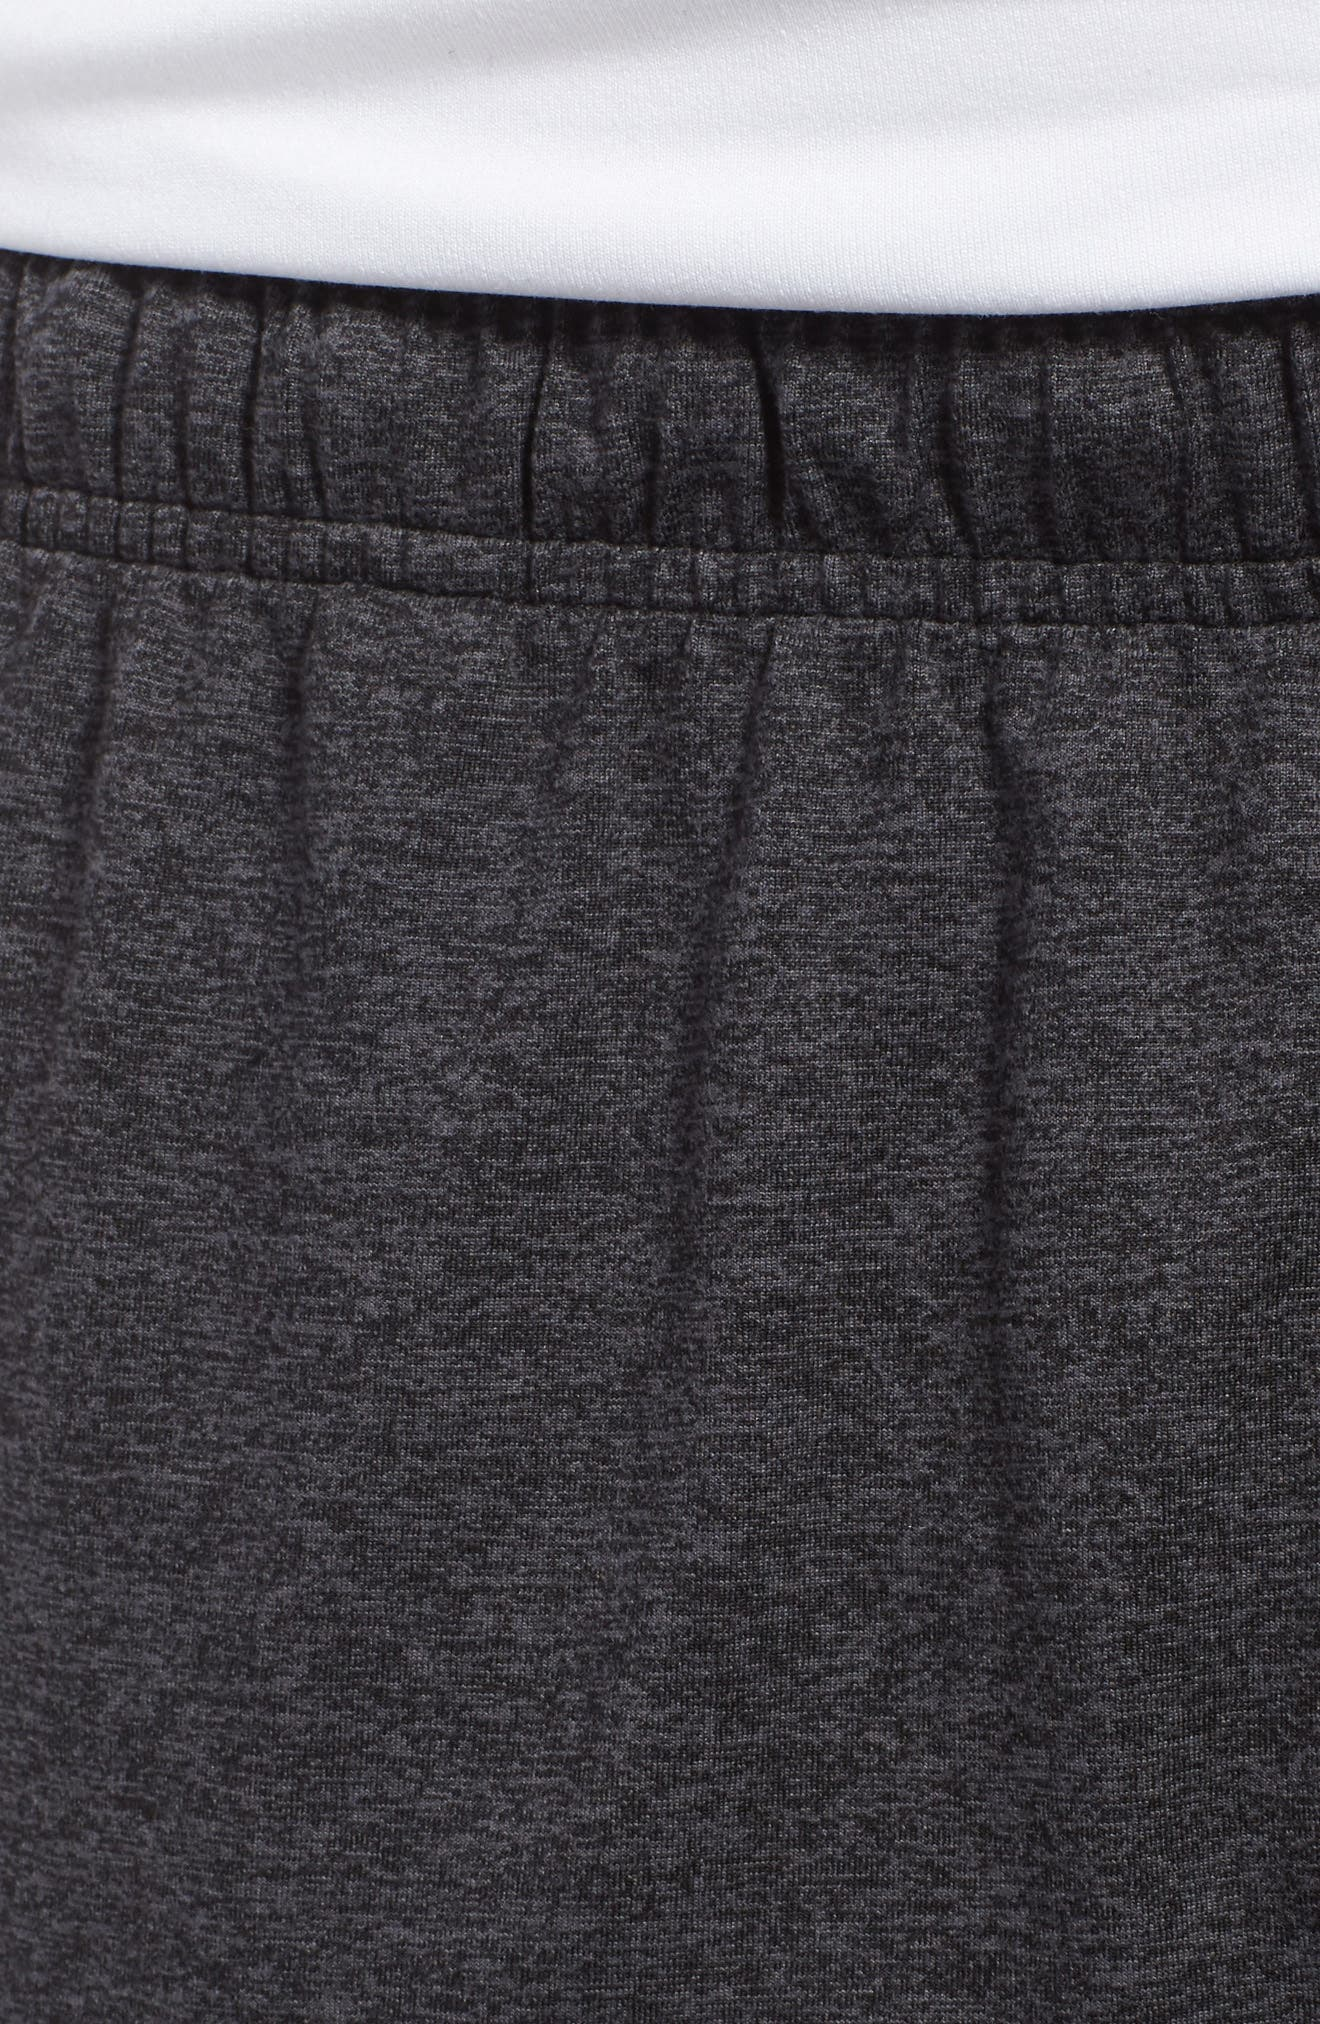 'Go To' Moisture Wicking Stretch Shorts,                             Alternate thumbnail 4, color,                             HEATHER CHARCOAL/ BLACK